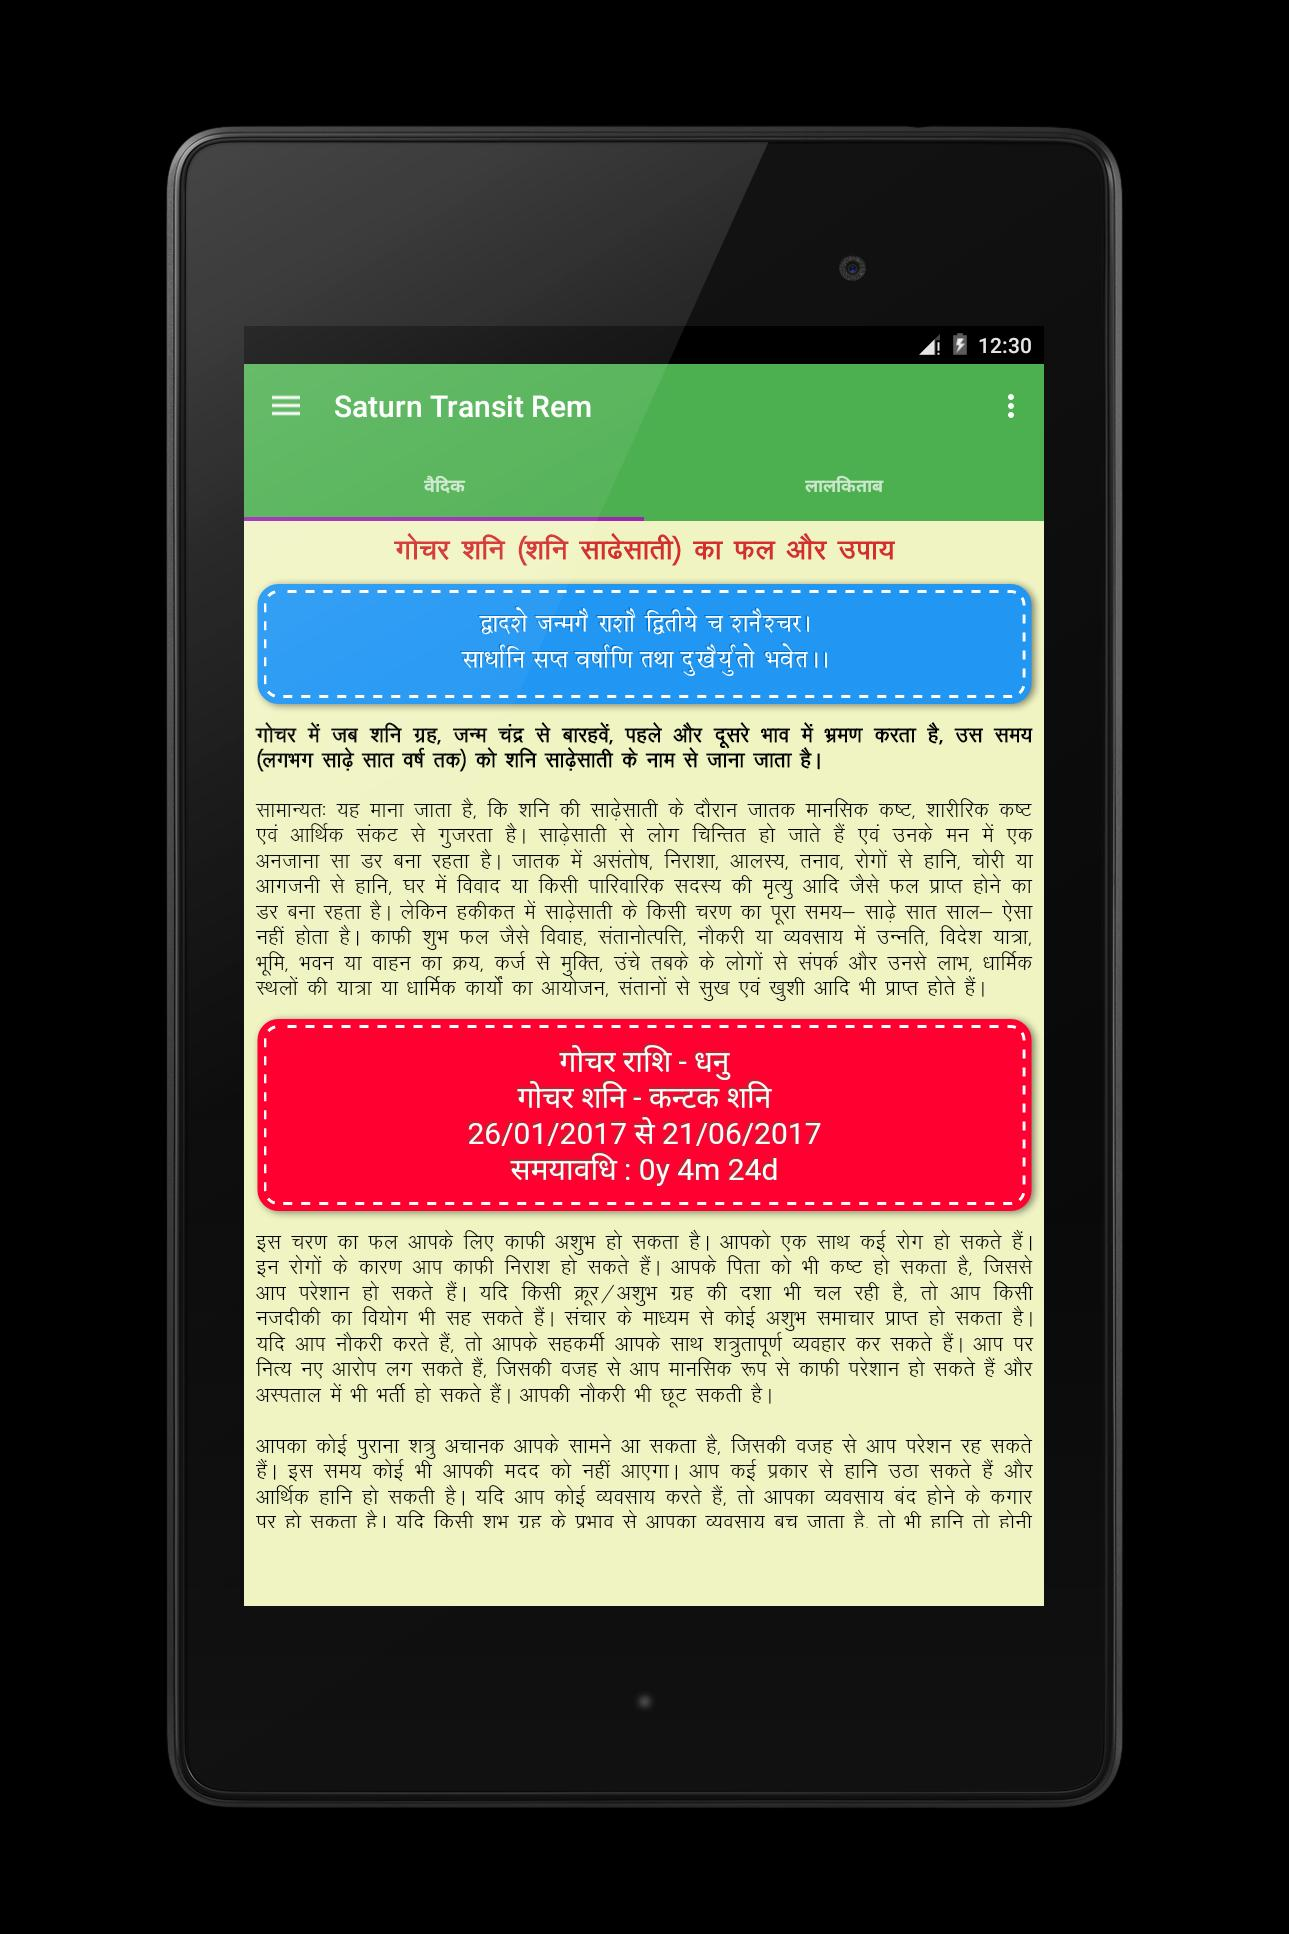 Astrology & Remedies for Android - APK Download